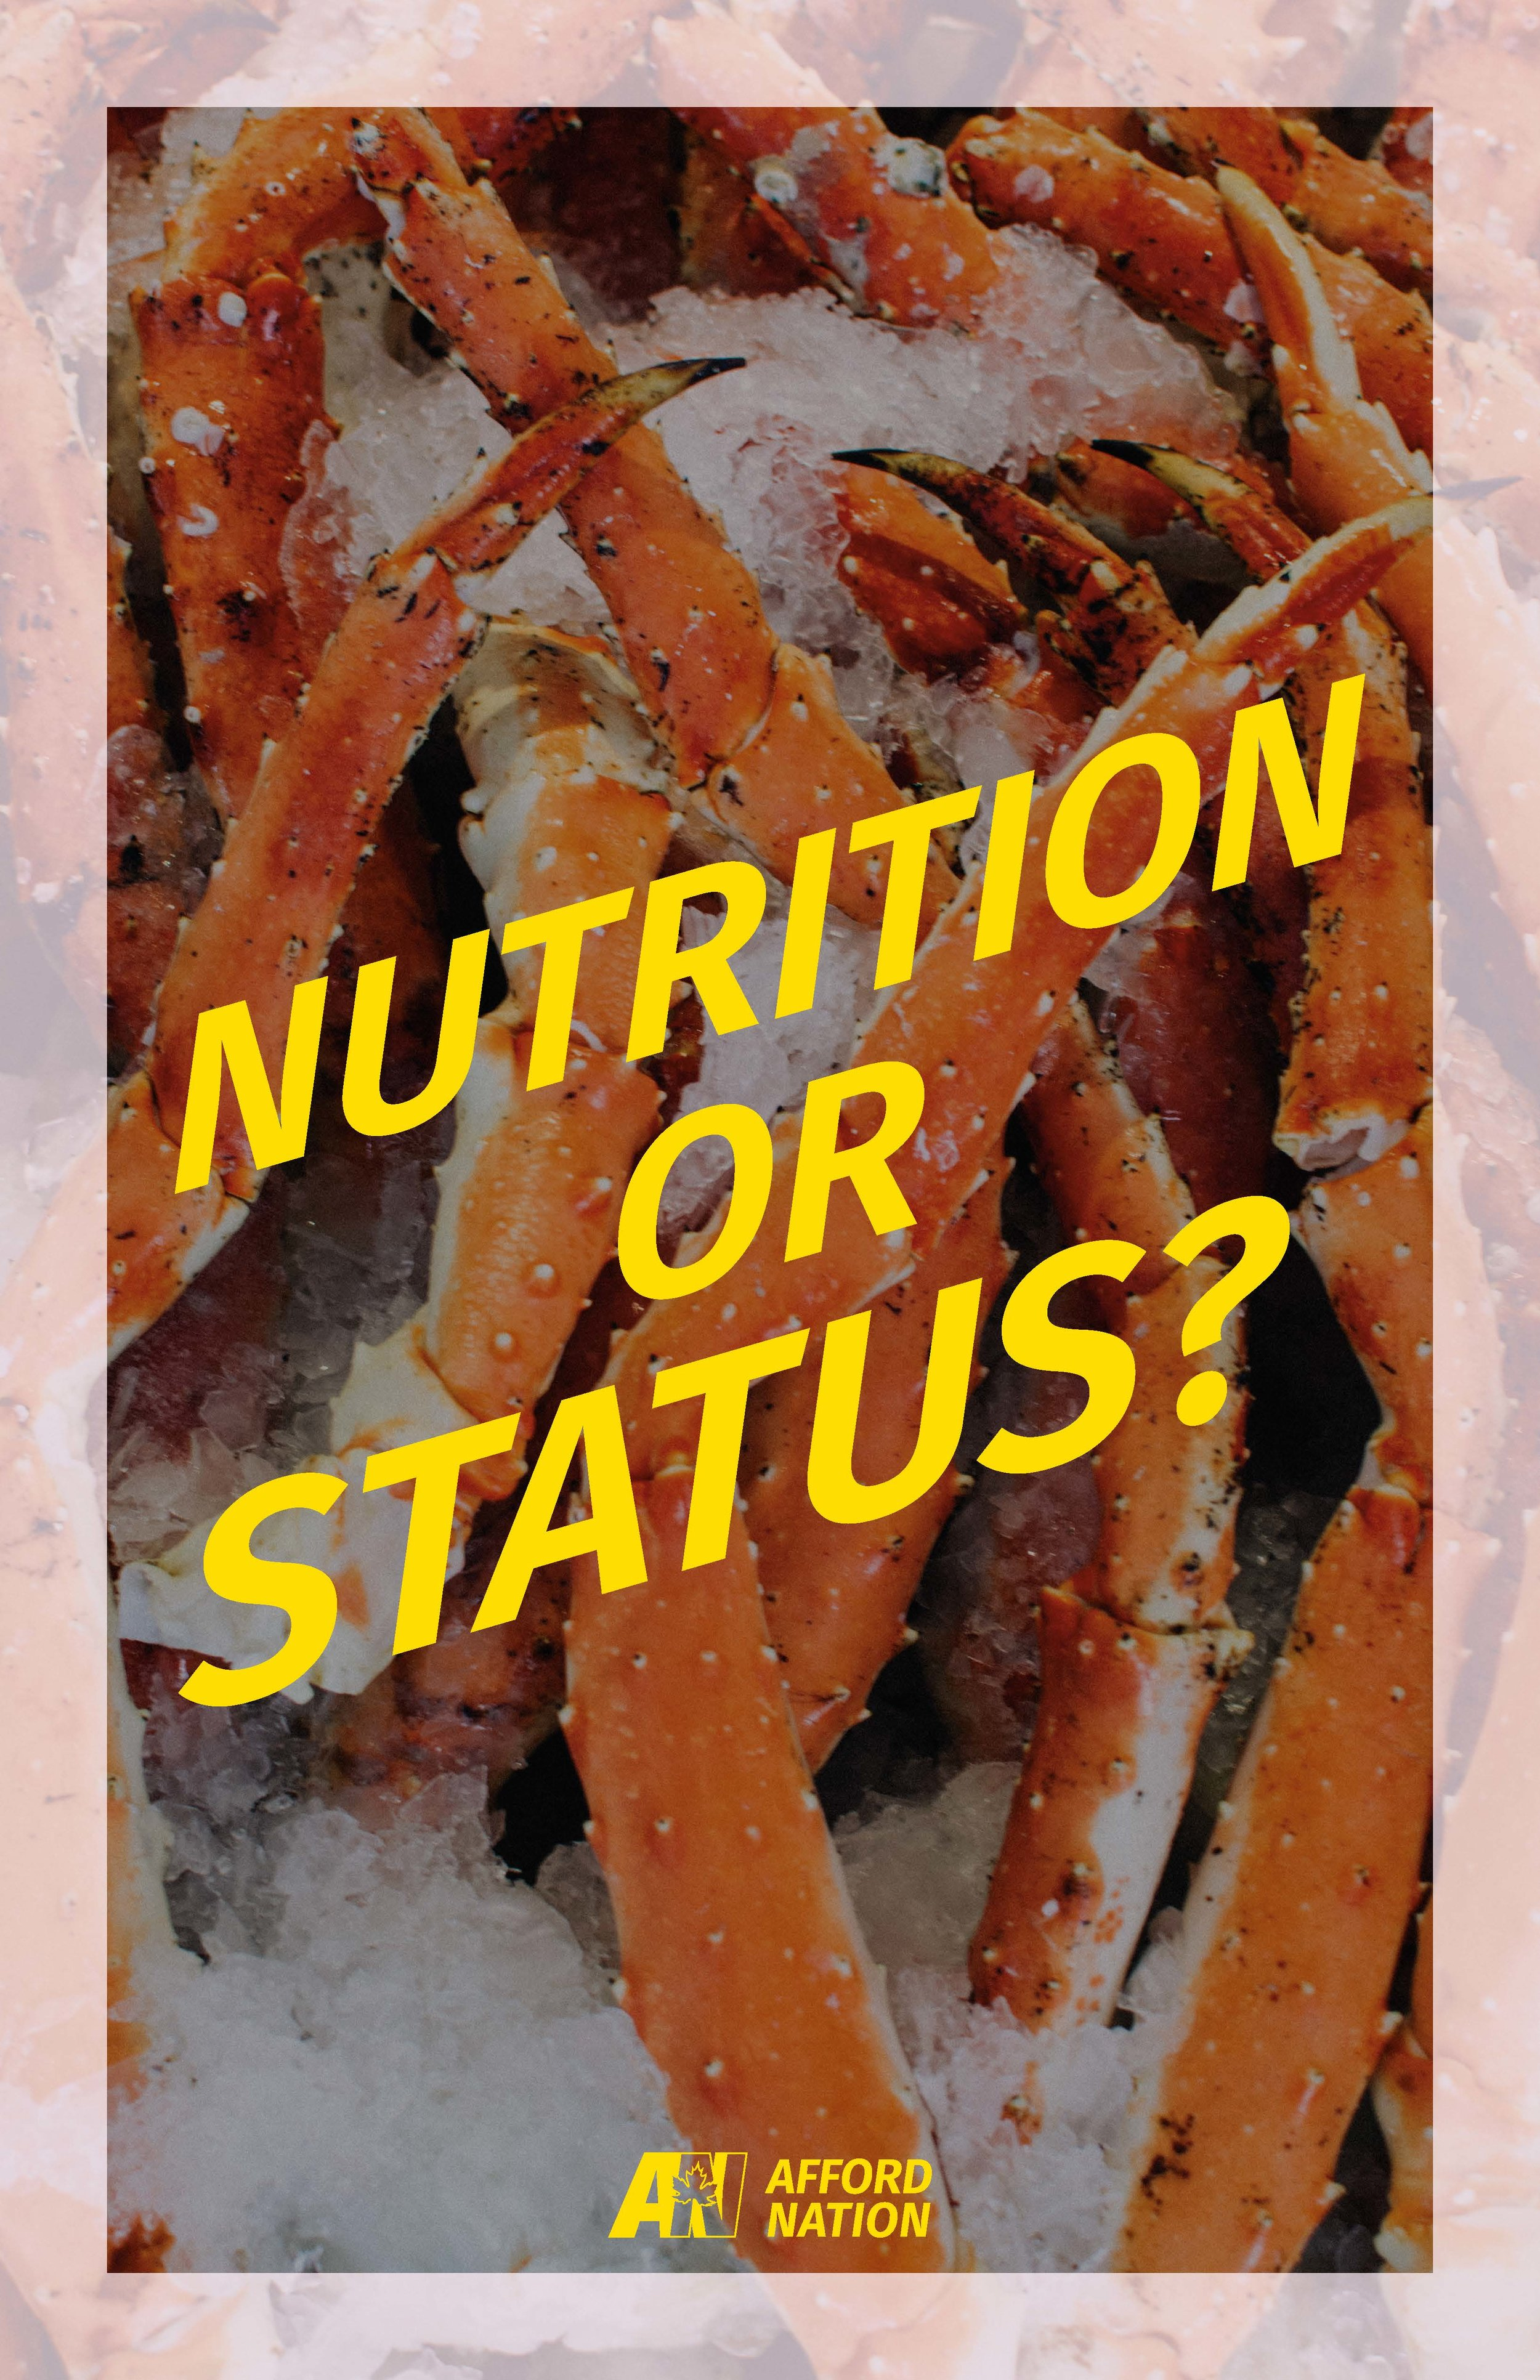 Nutrition or status?